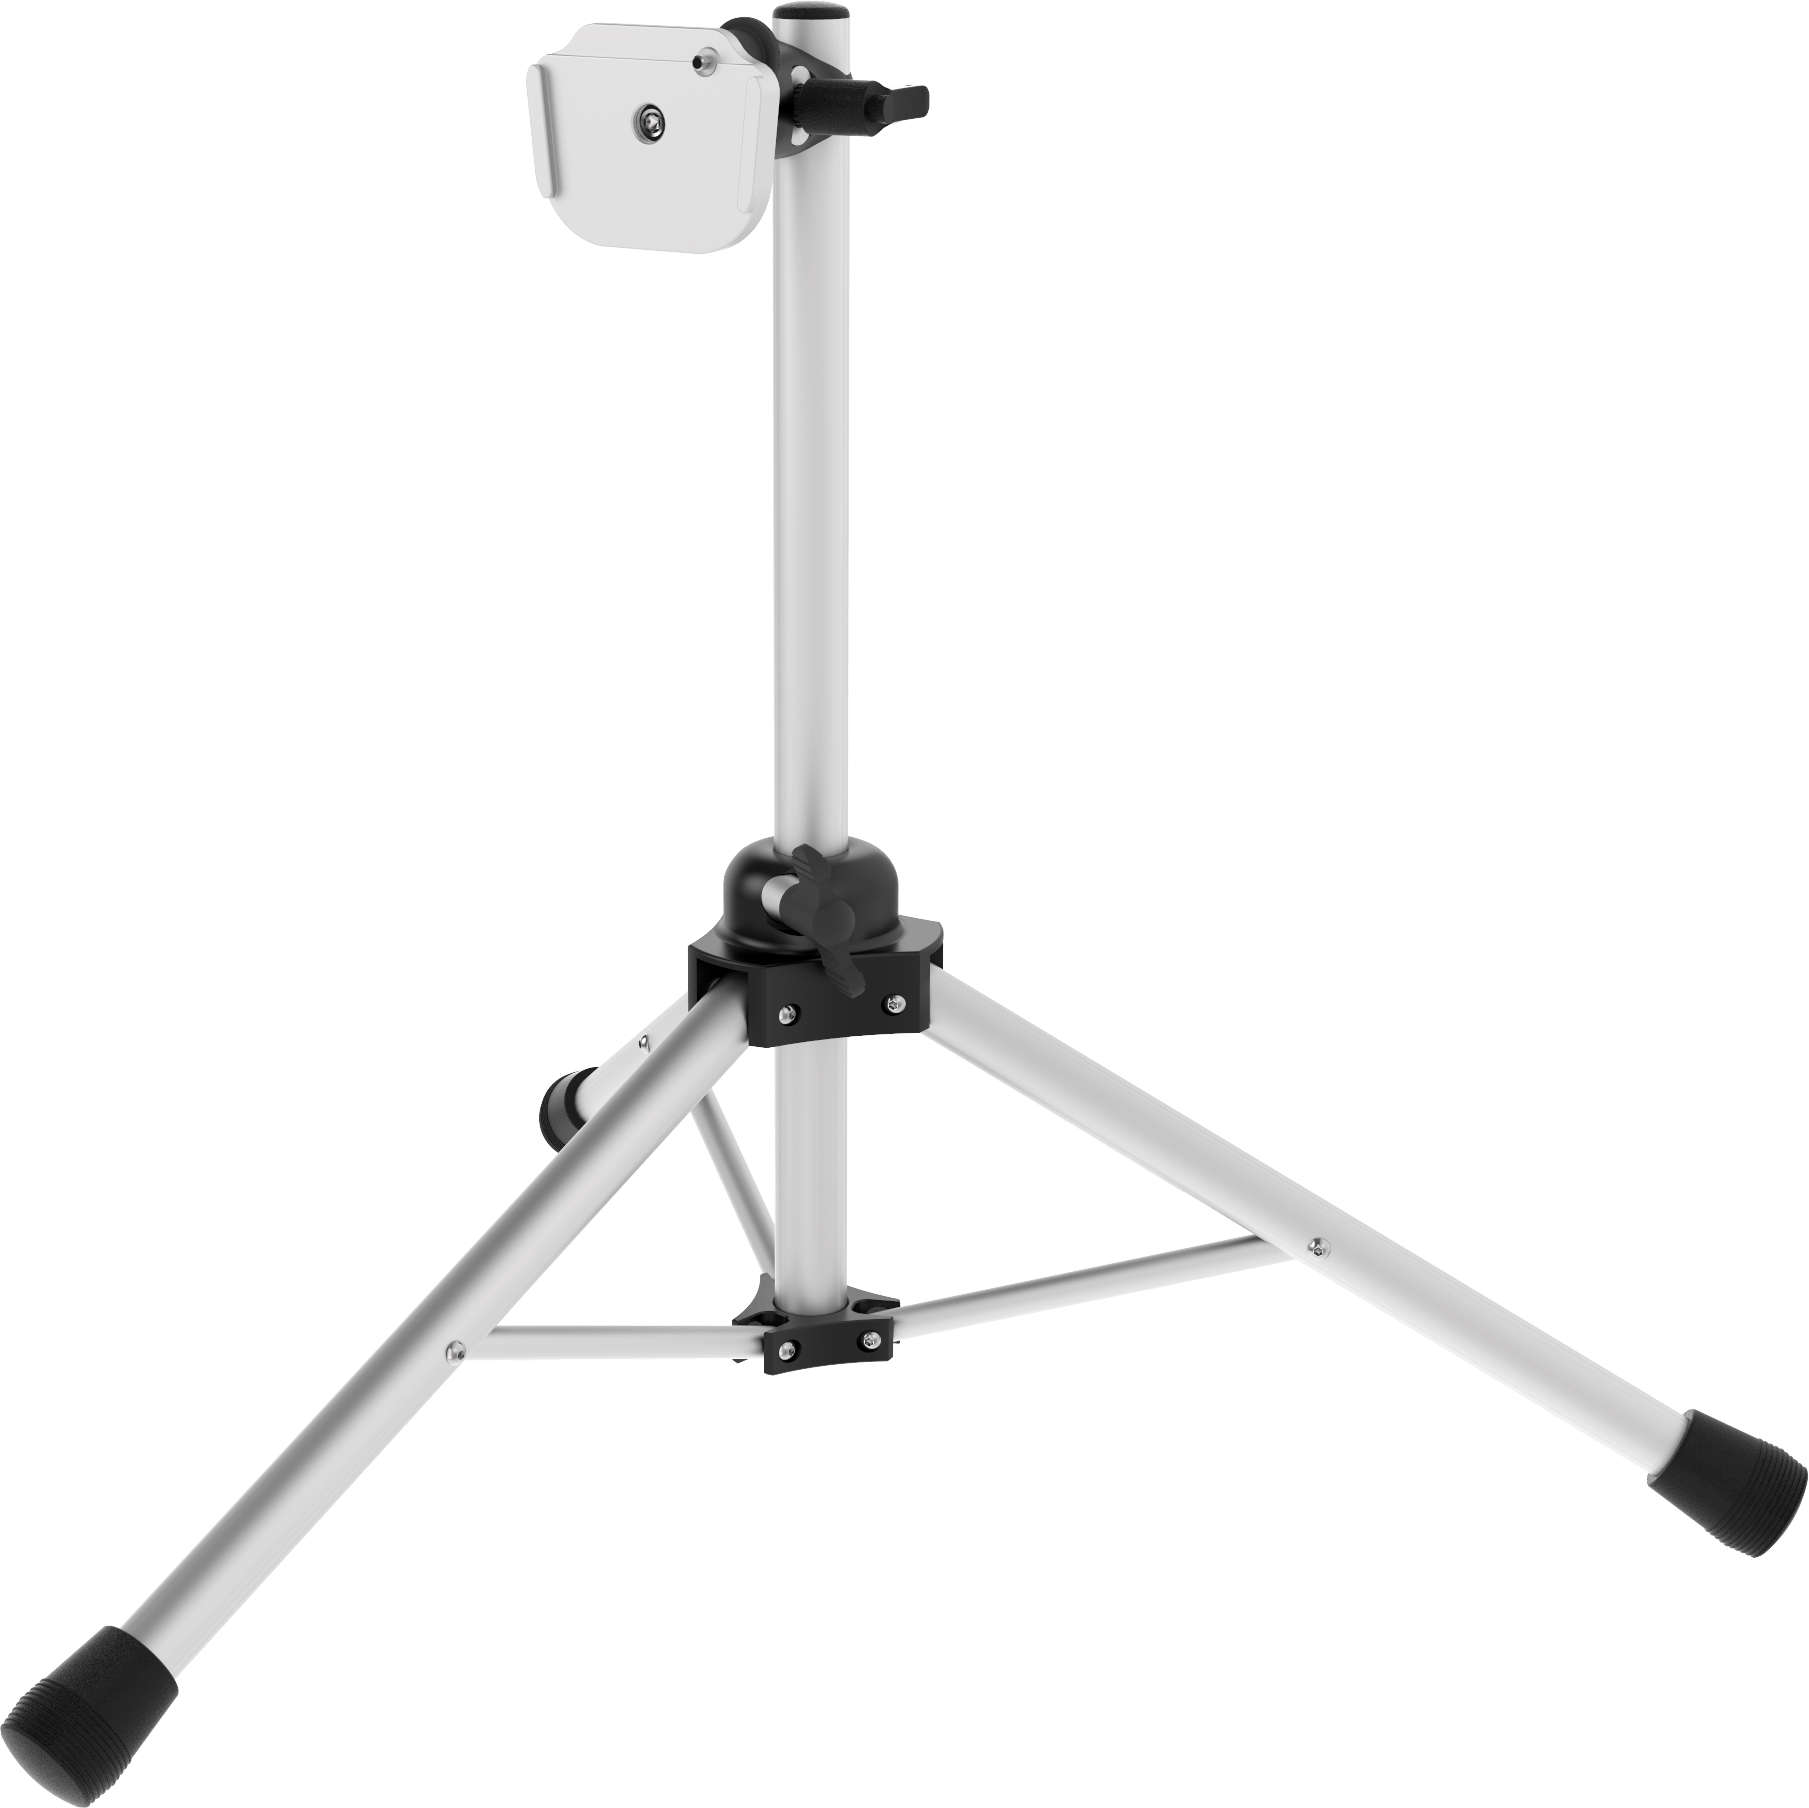 Table stands for AAC devices, tablets, switches and more, by Rehadapt